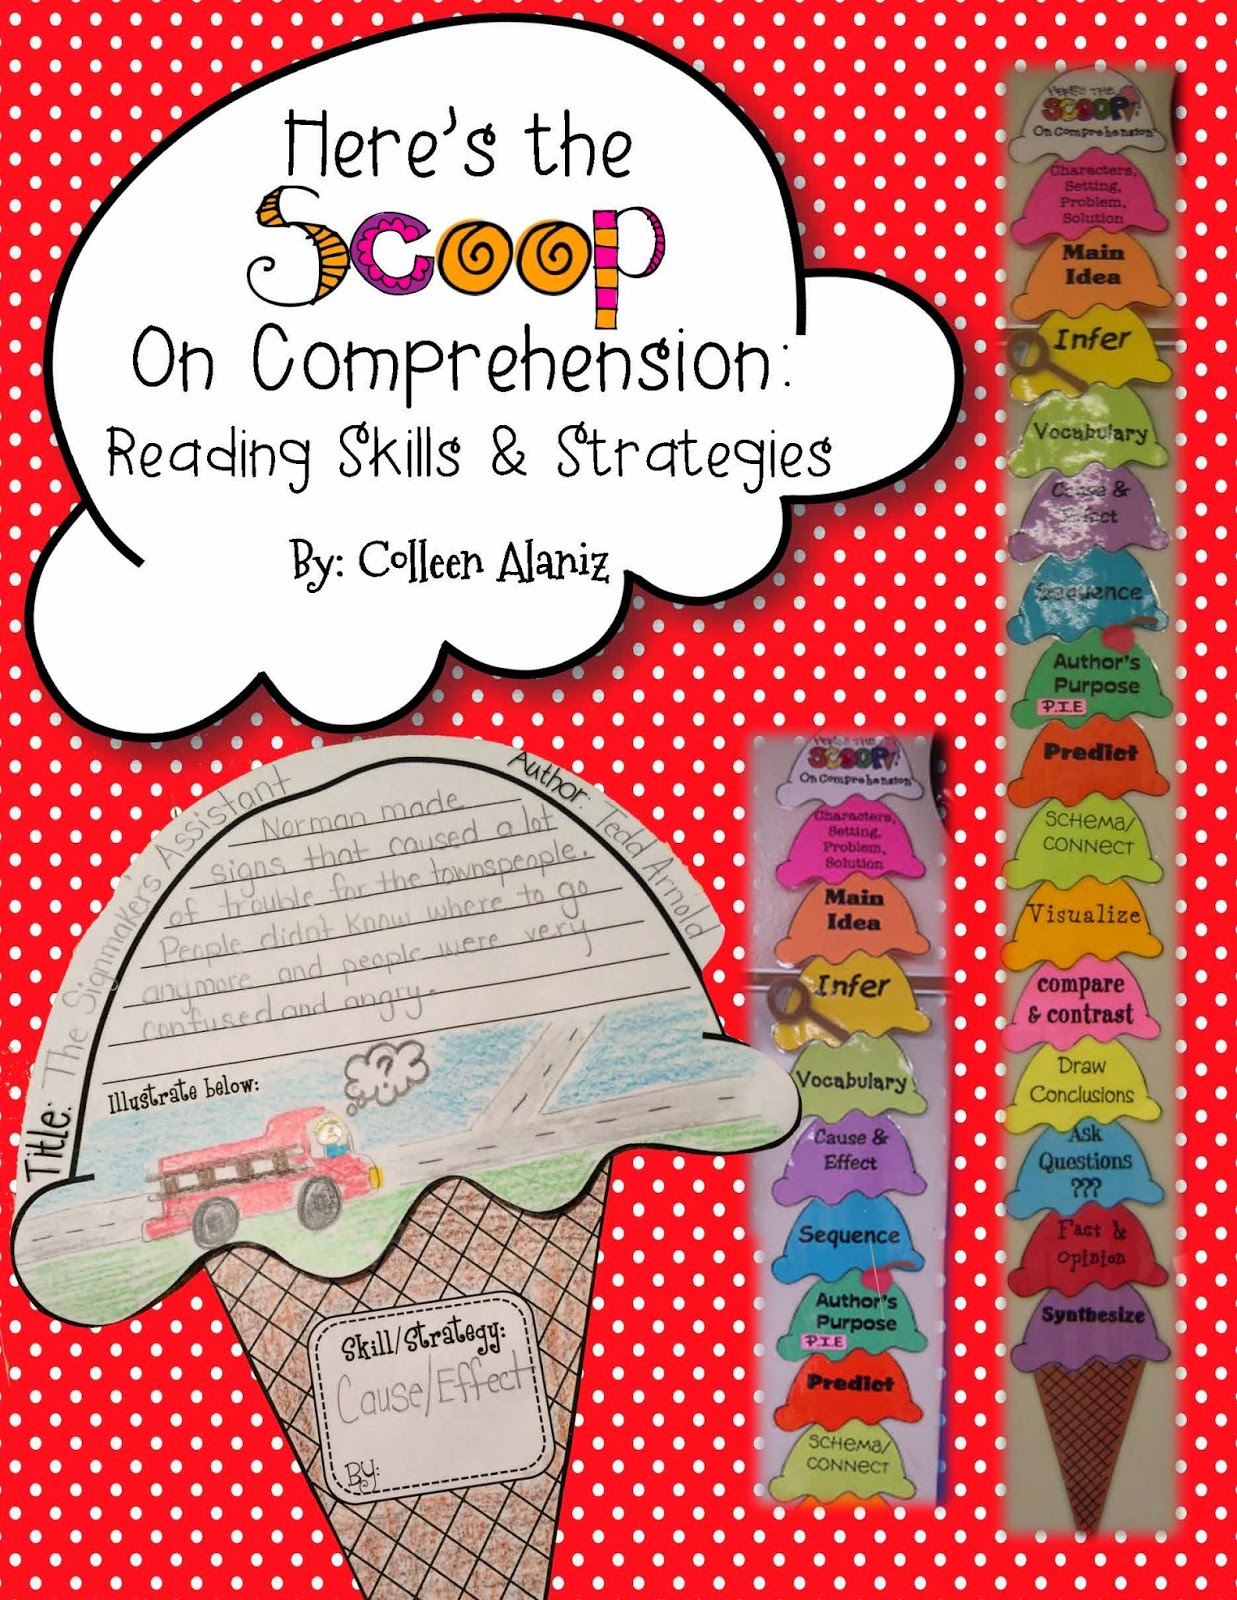 http://www.teacherspayteachers.com/Product/Ice-Cream-Scoop-Comprehension-Strategies-224238